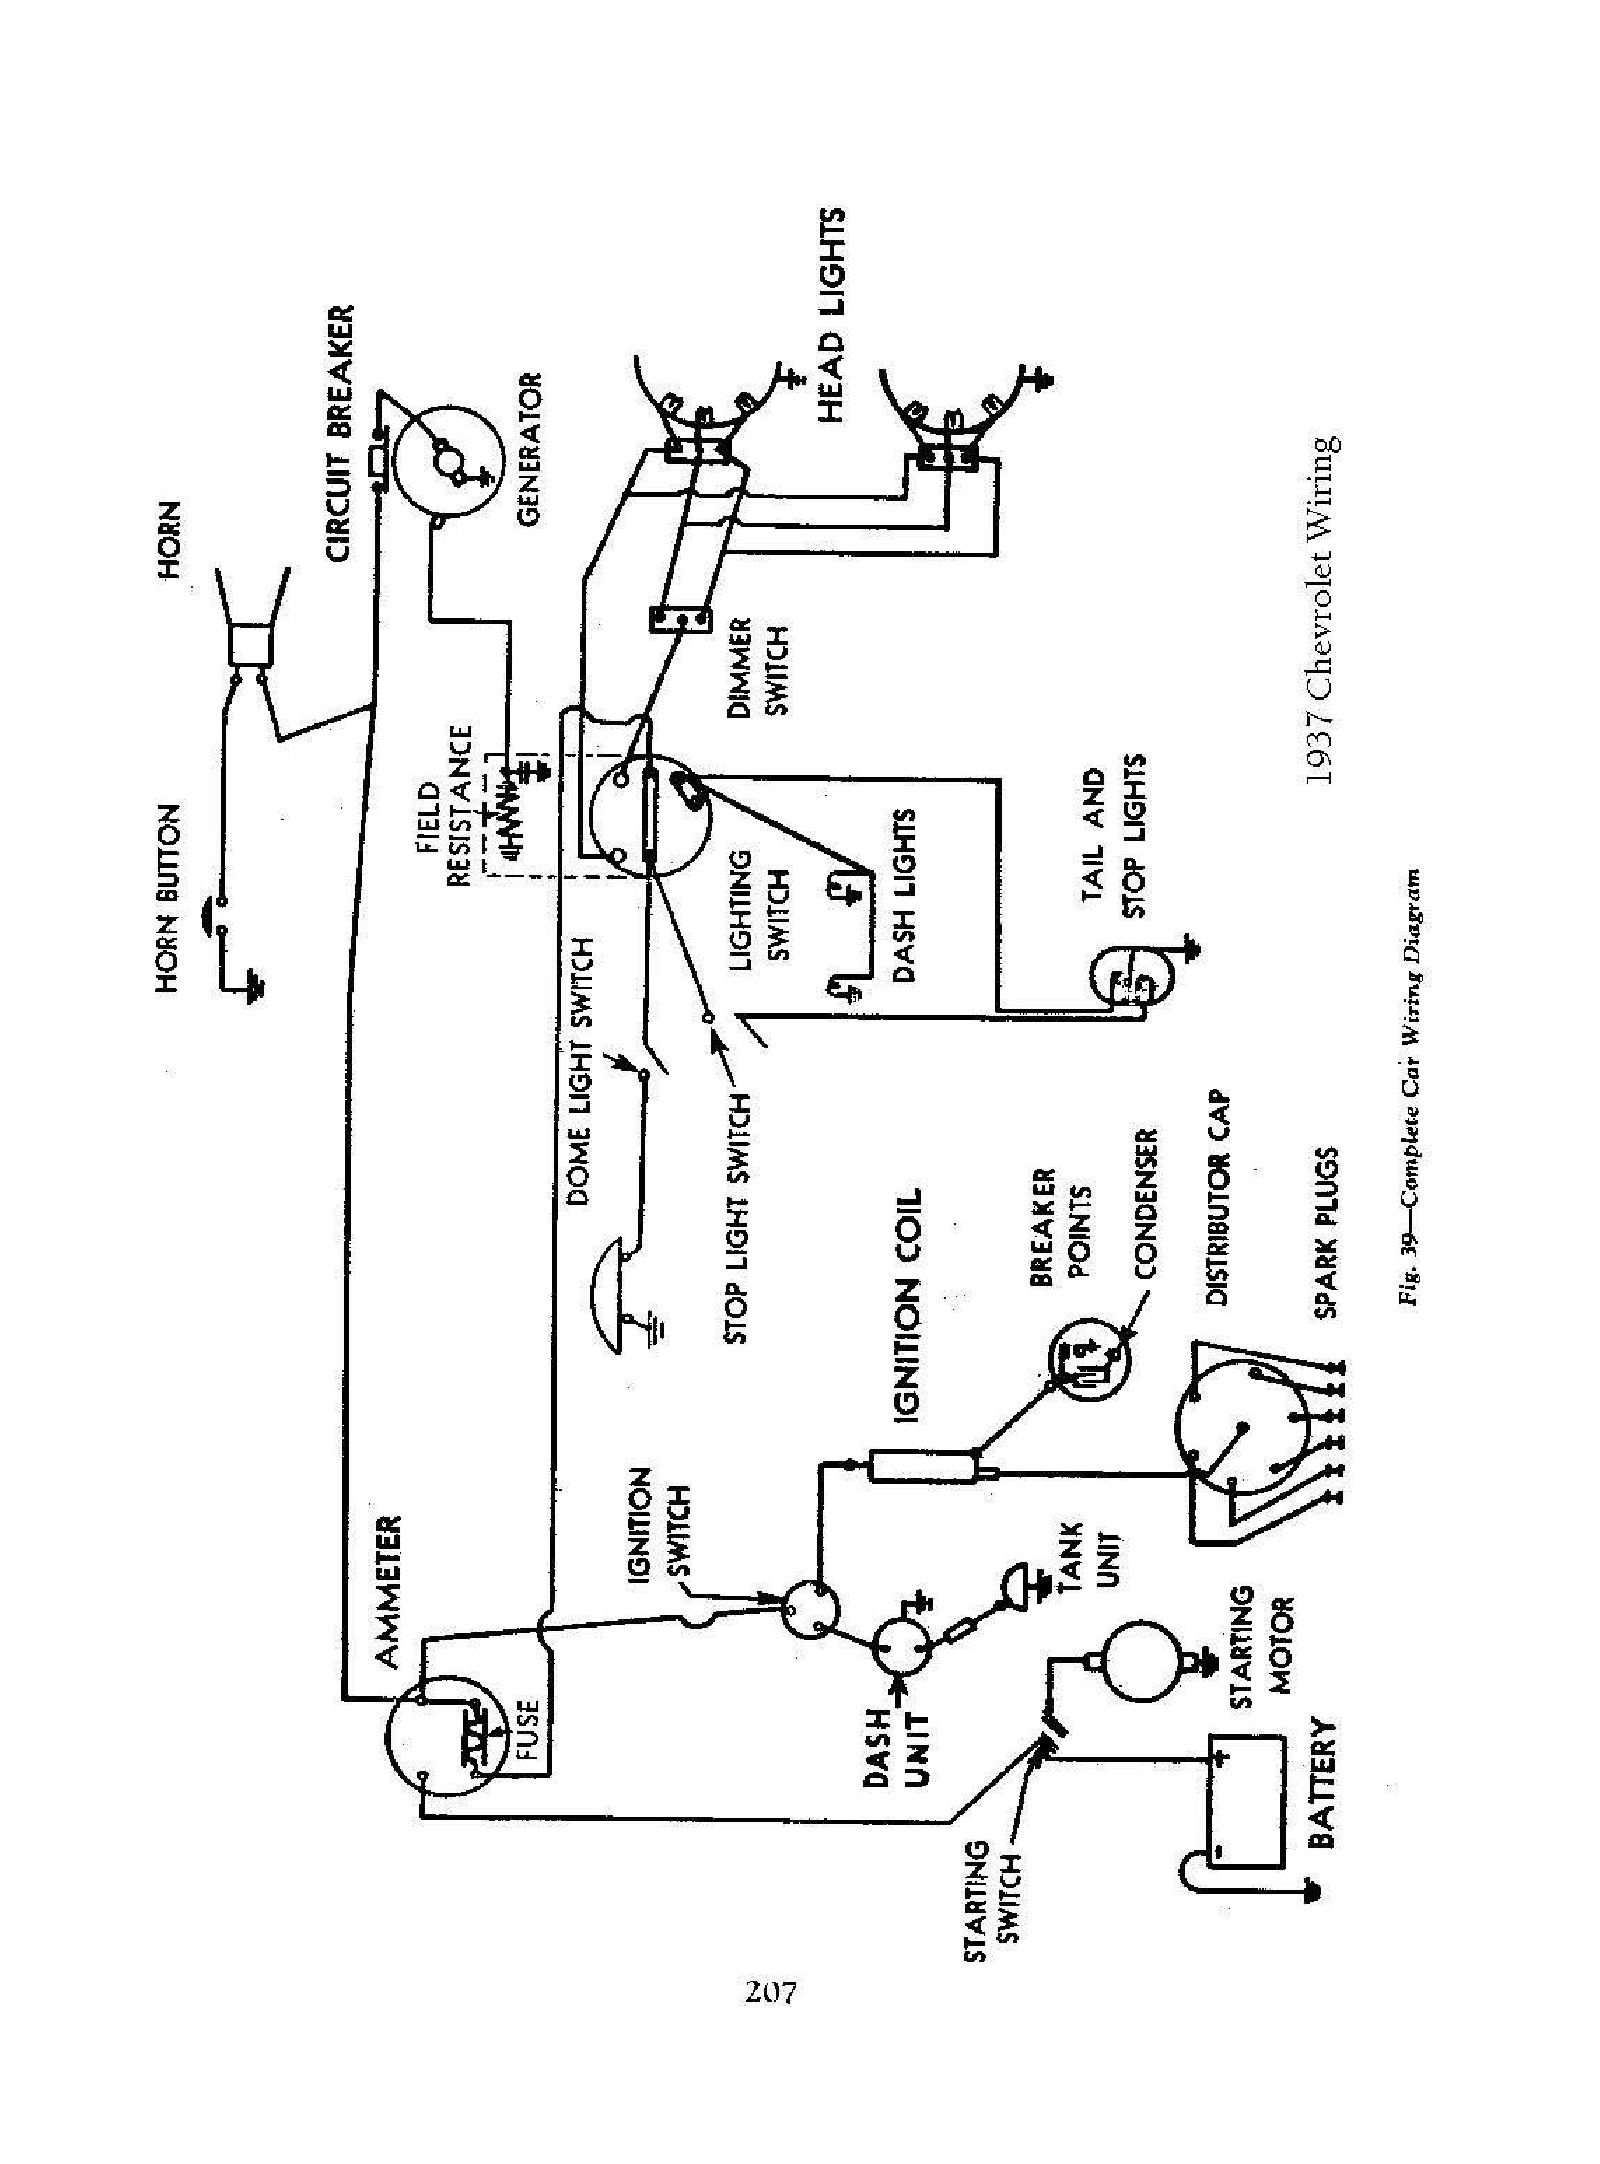 1947 Buick Wiring Diagram Ask Answer 1996 S10 Radio Chevy Diagrams Rh Oldcarmanualproject Com 1998 Regal Vehicle Stereo